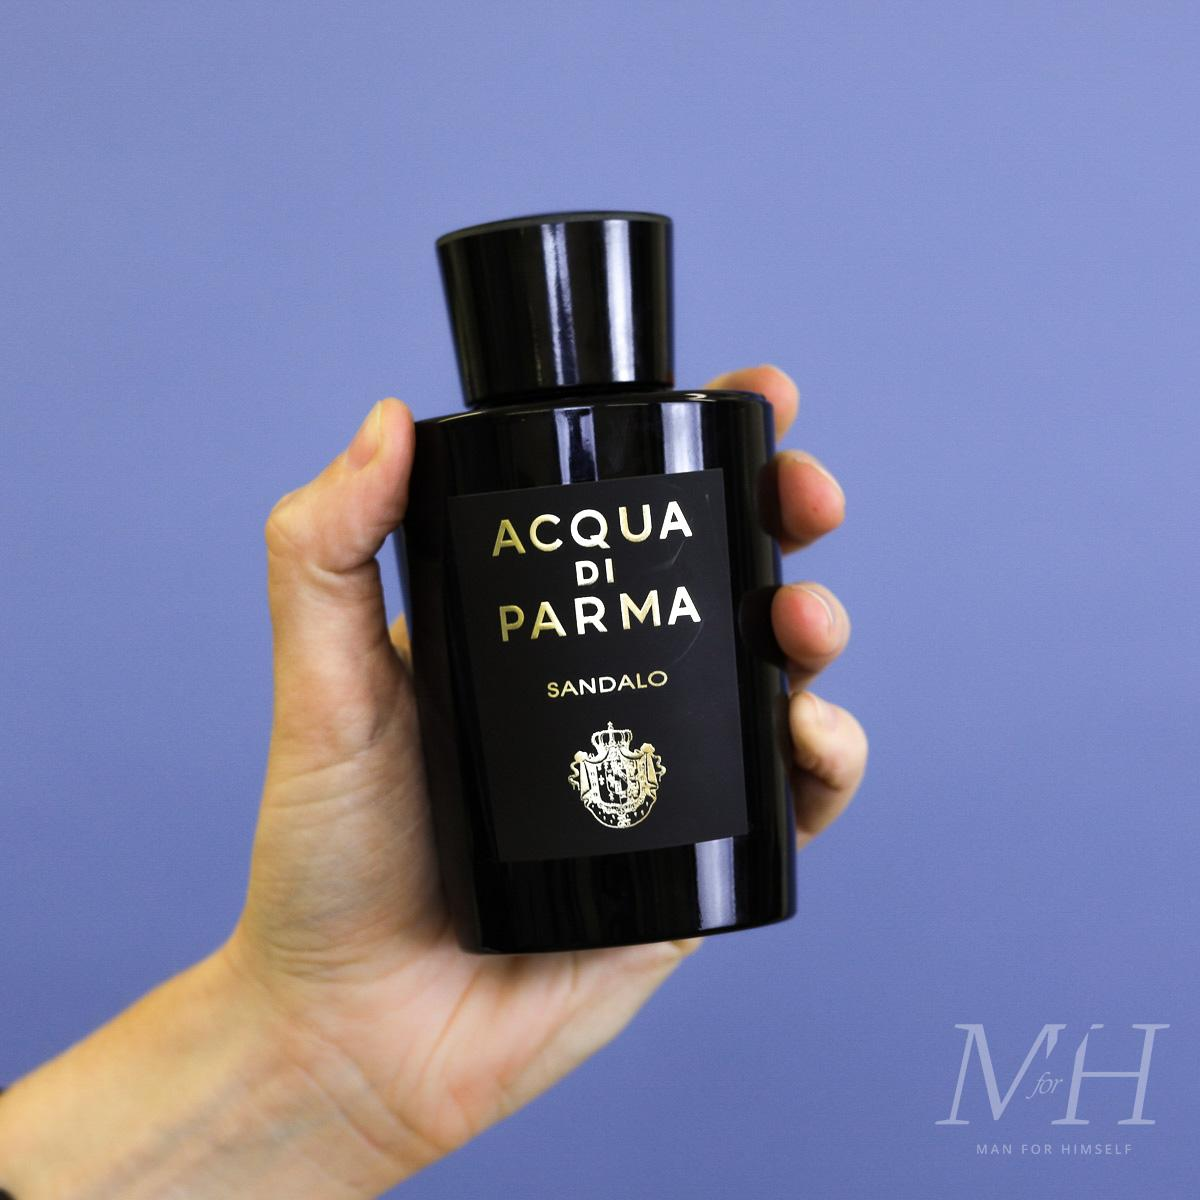 acqua-di-parma-sandalo-product-review-man-for-himself-2